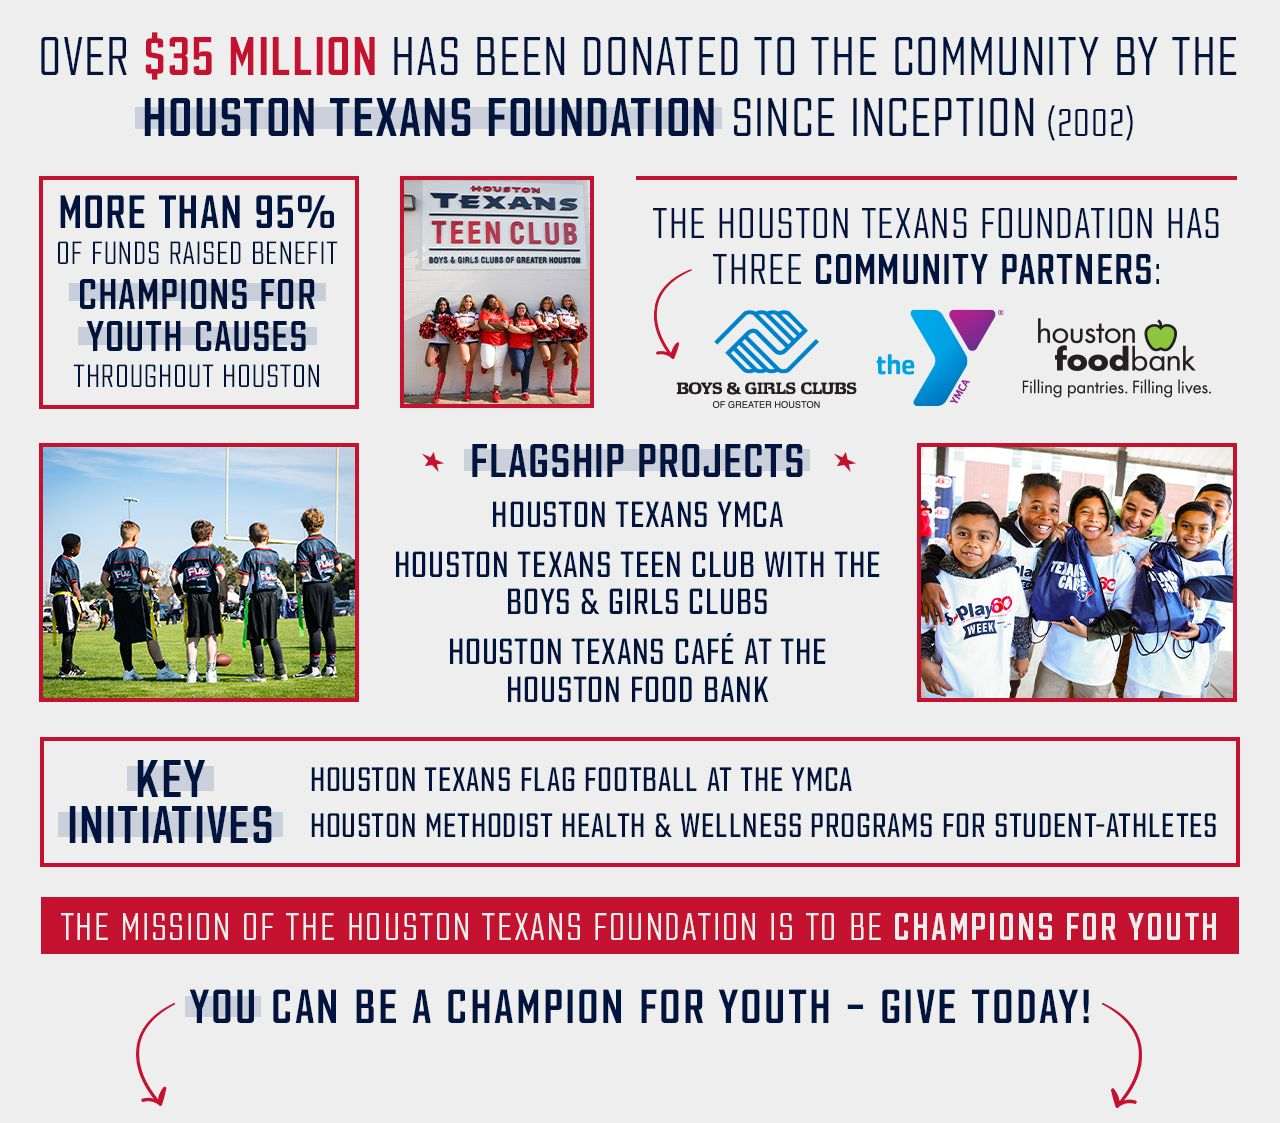 Over $35 million has been donated to the community by the Houston Texans Foundation since inception (2002). More than 95% of funds raised benefit champions for youth causes throughout Houston. The Houston Texans Foundation has three community partners: Boys and Girls Clubs of Greater Houston, the YMCA and the Houston Food Bank. Flagship Projects: Houston Texans YMCA, Houston Texans Teen Club with the Boys and Girls Clubs, Houston Texans Café at the Houston Food Bank. Key Initiatives: Houston Texans Flag Football at the YMCA, Houston Methodist Health & Wellness Programs for student-athletes. The mission of the Houston Texans Foundation is to be Champions for Youth. You can be a Champion for Youth – Give Today!